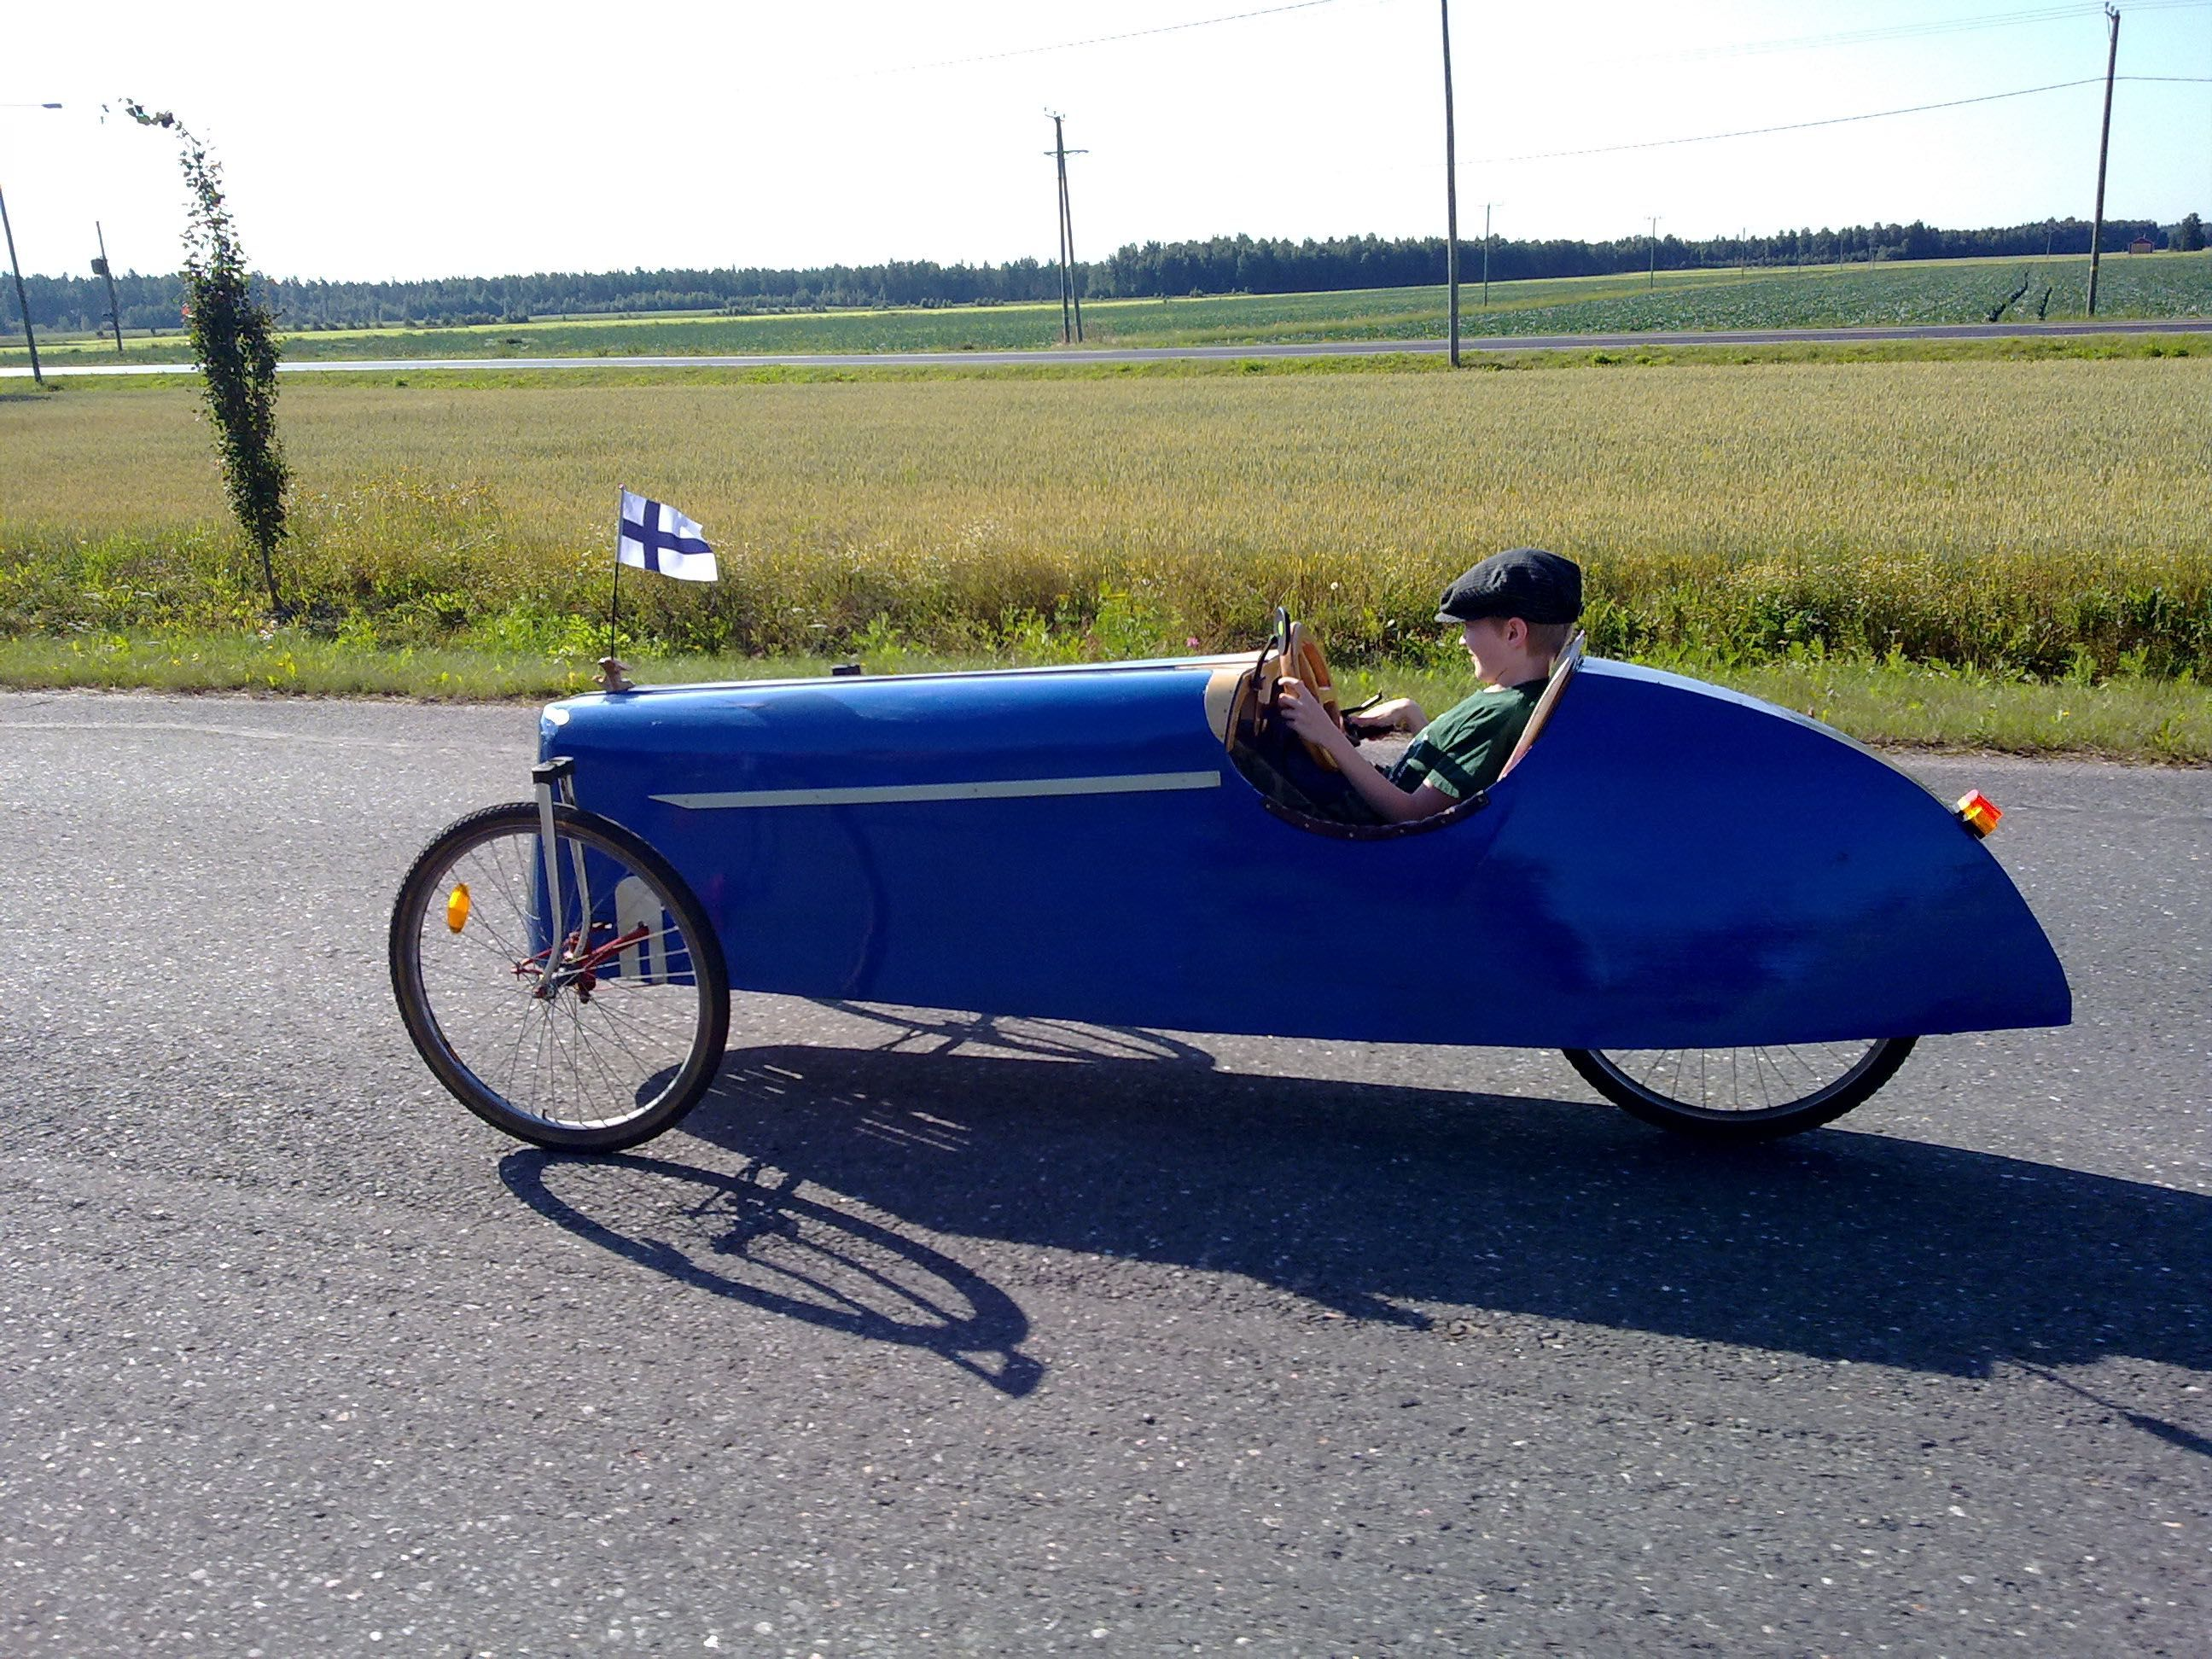 Velomobile projects | Cycle carts | Pedal cars, Bike, Vehicles